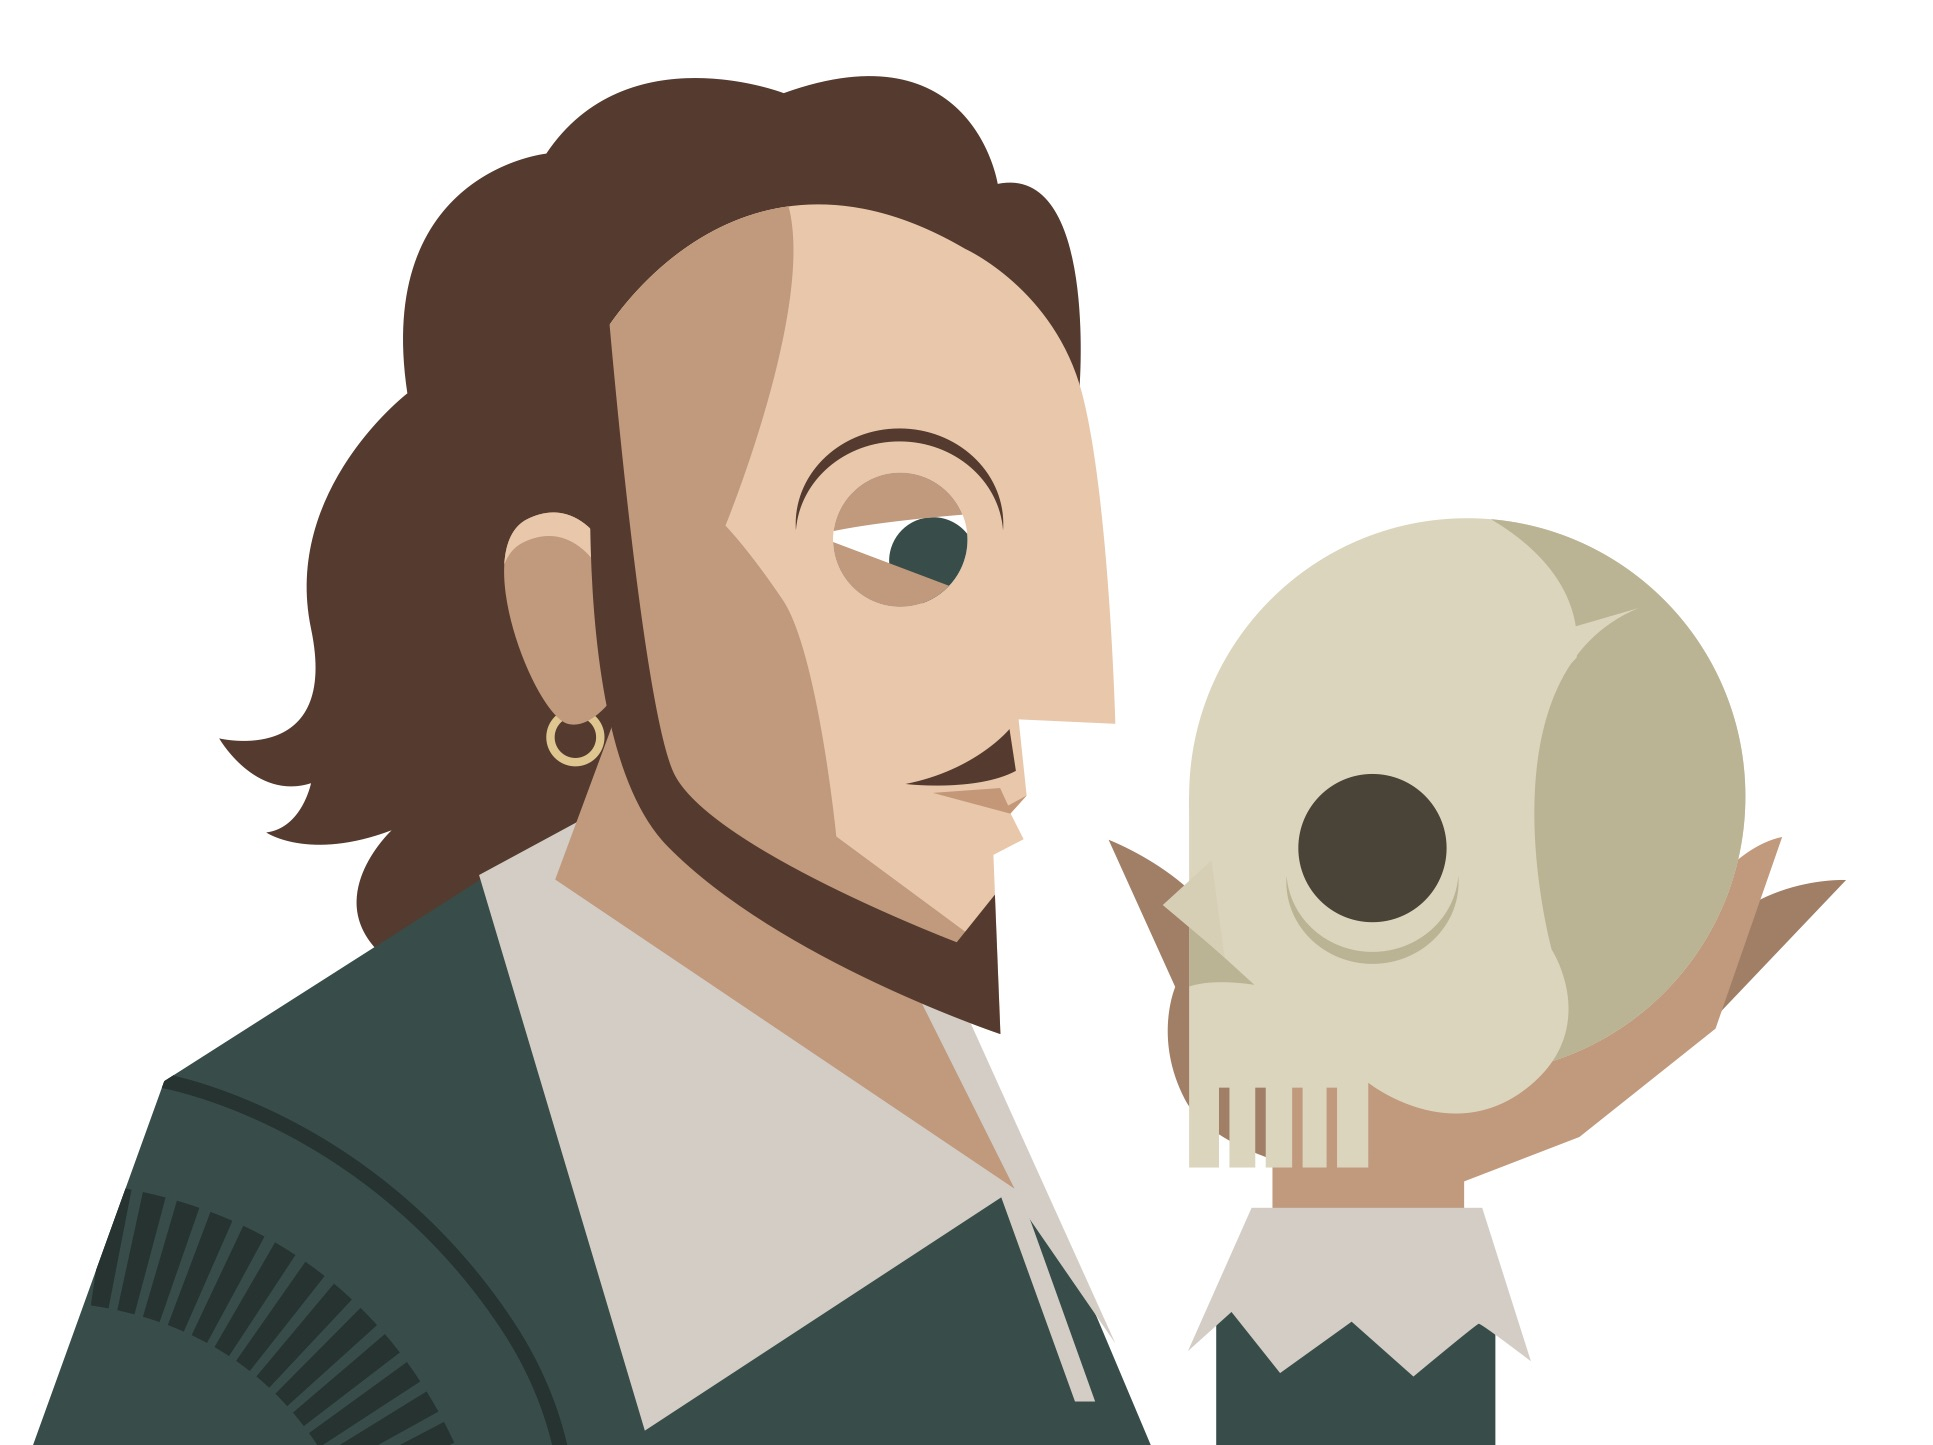 Routing out be verbs with Shakespeare and a Hamlet skull